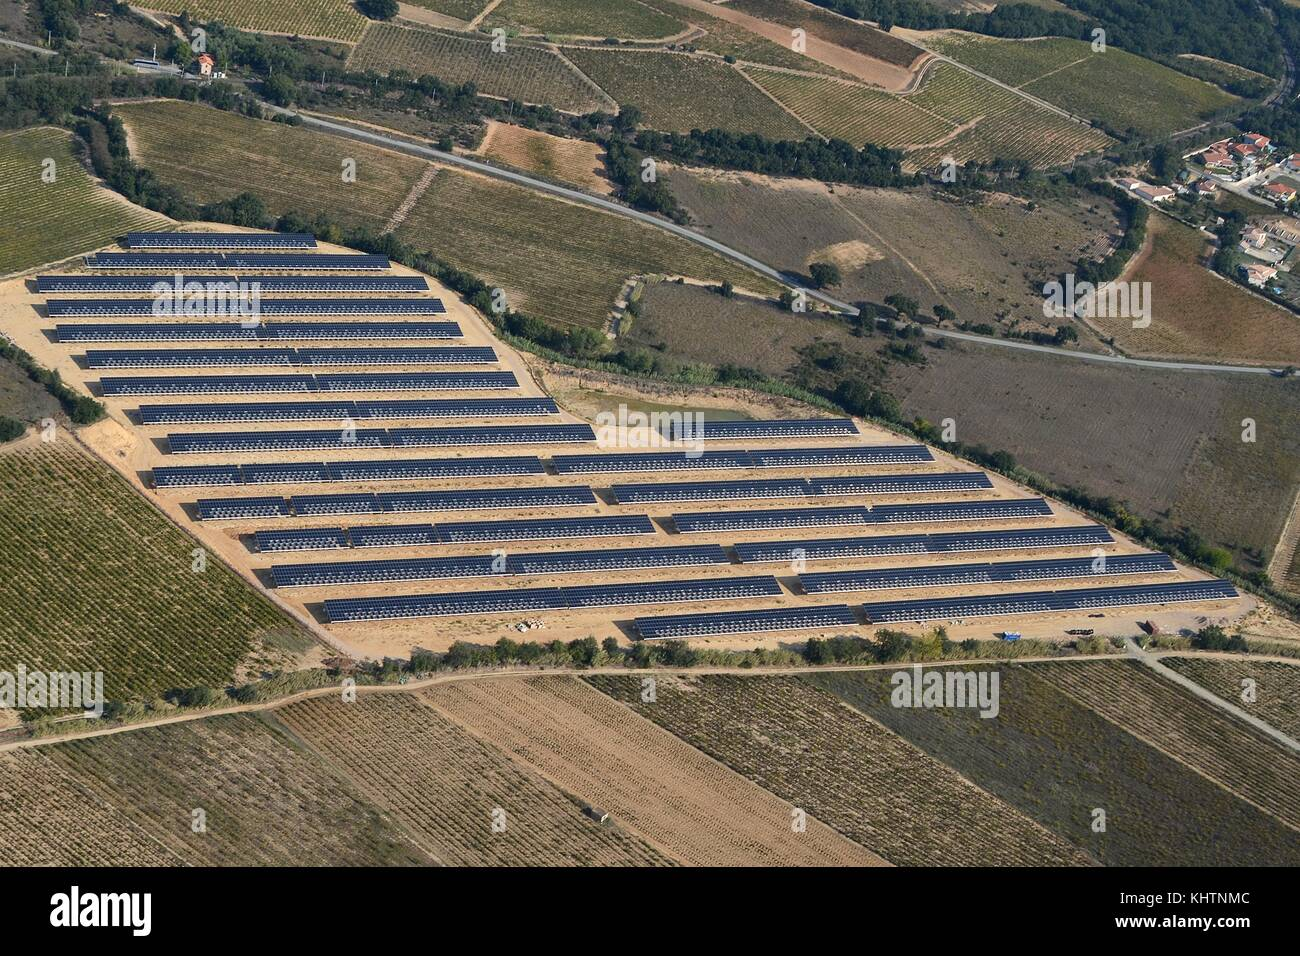 SOLAR PANELS IN THE SOUTH OF FRANCE - Stock Image